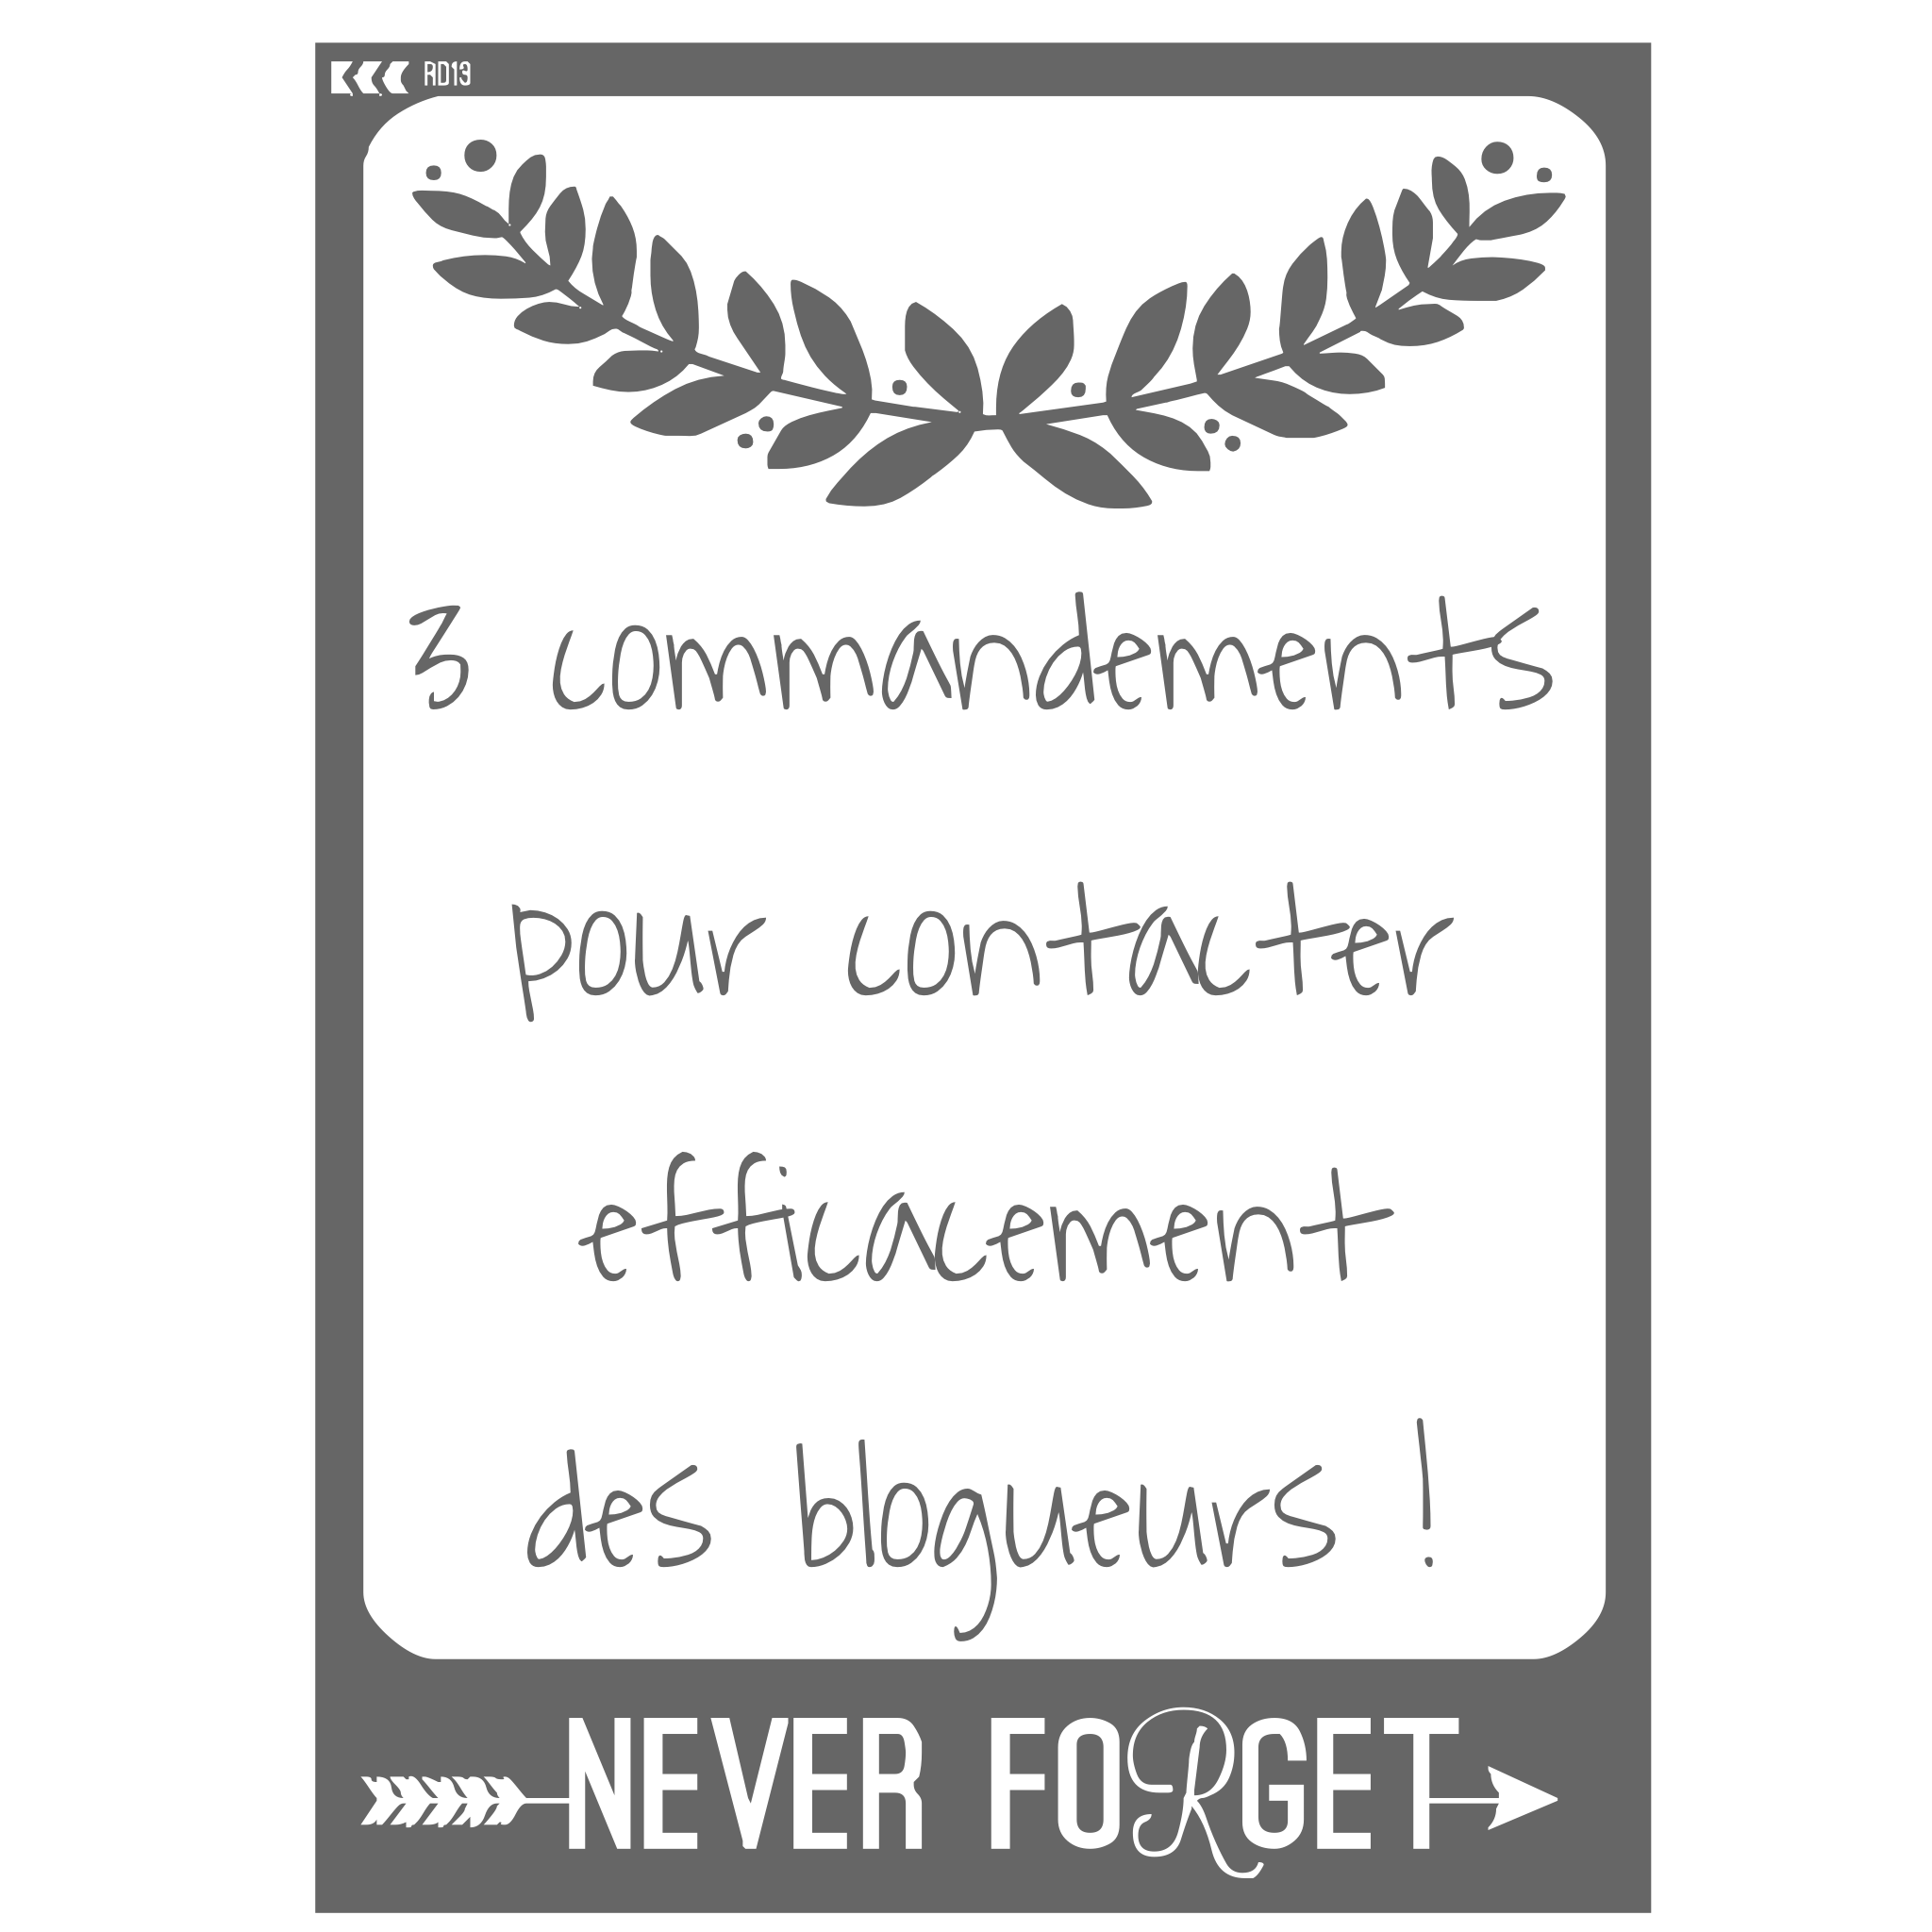 commandements contacter blogueur